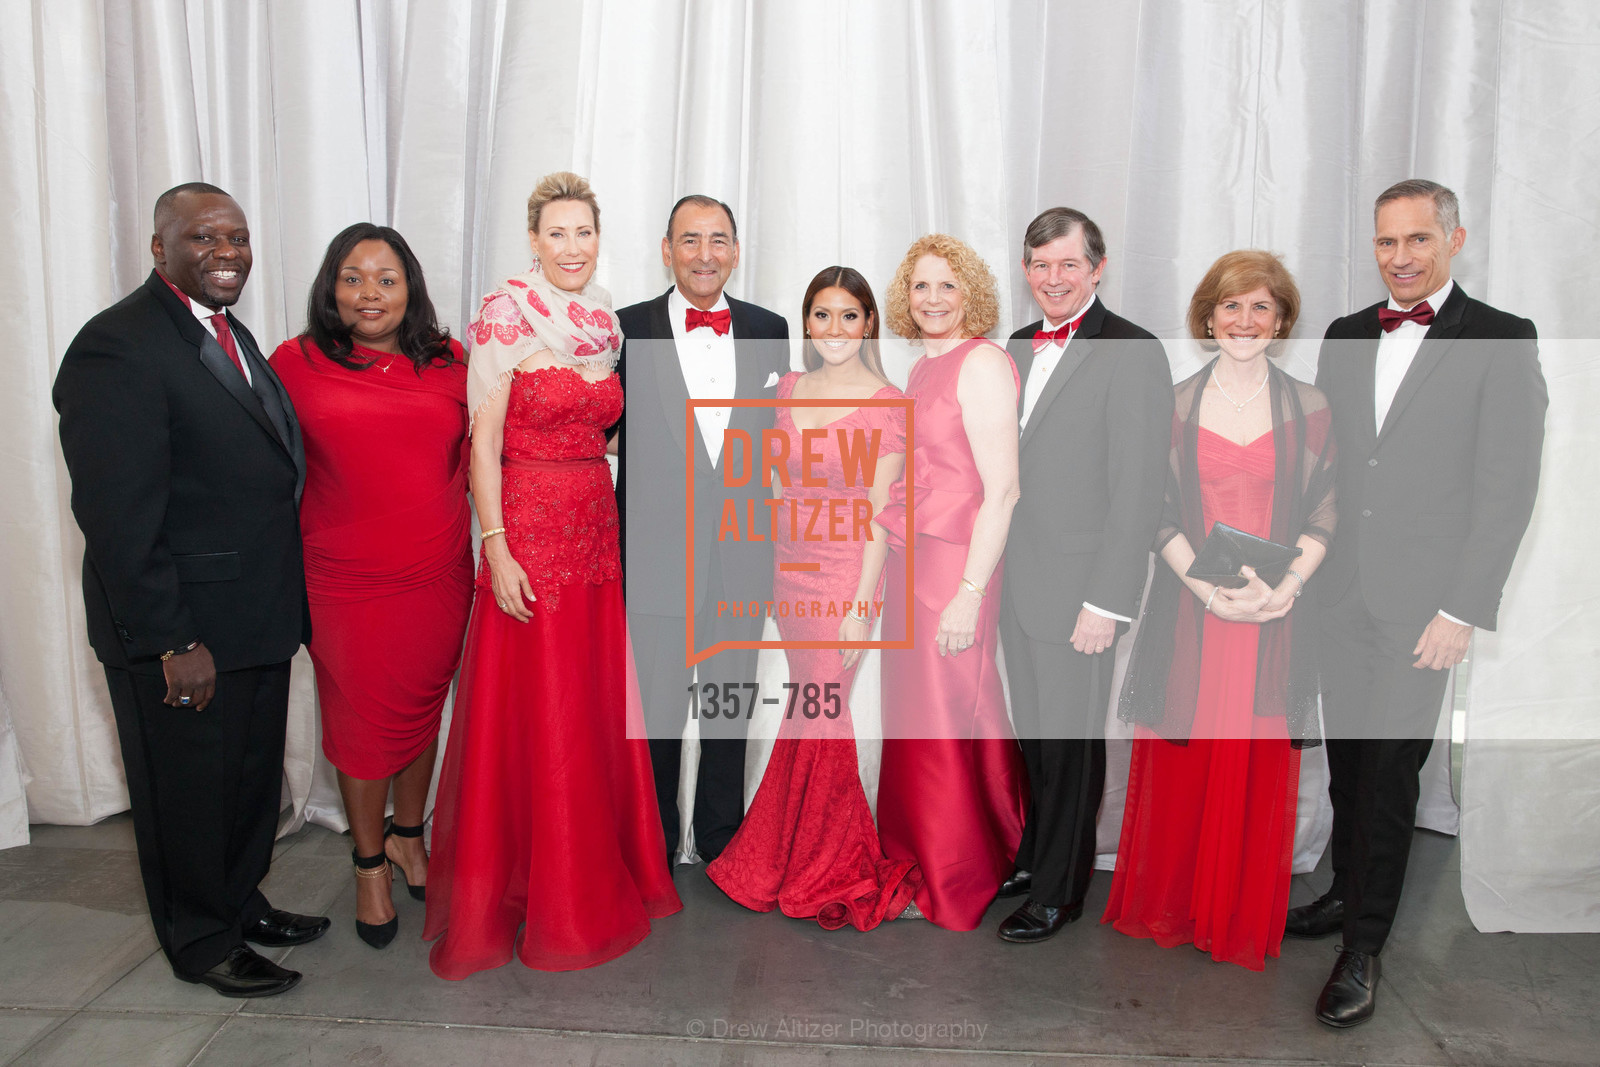 Keith White, Rose White, Carolyn Mehran, Alexander Mehran, Lillian Phan, Sarah Earley, Anthony Earley, Gail McGovern, Mark Cloutier, 2015 RED CROSS Gala, US, April 11th, 2015,Drew Altizer, Drew Altizer Photography, full-service agency, private events, San Francisco photographer, photographer california